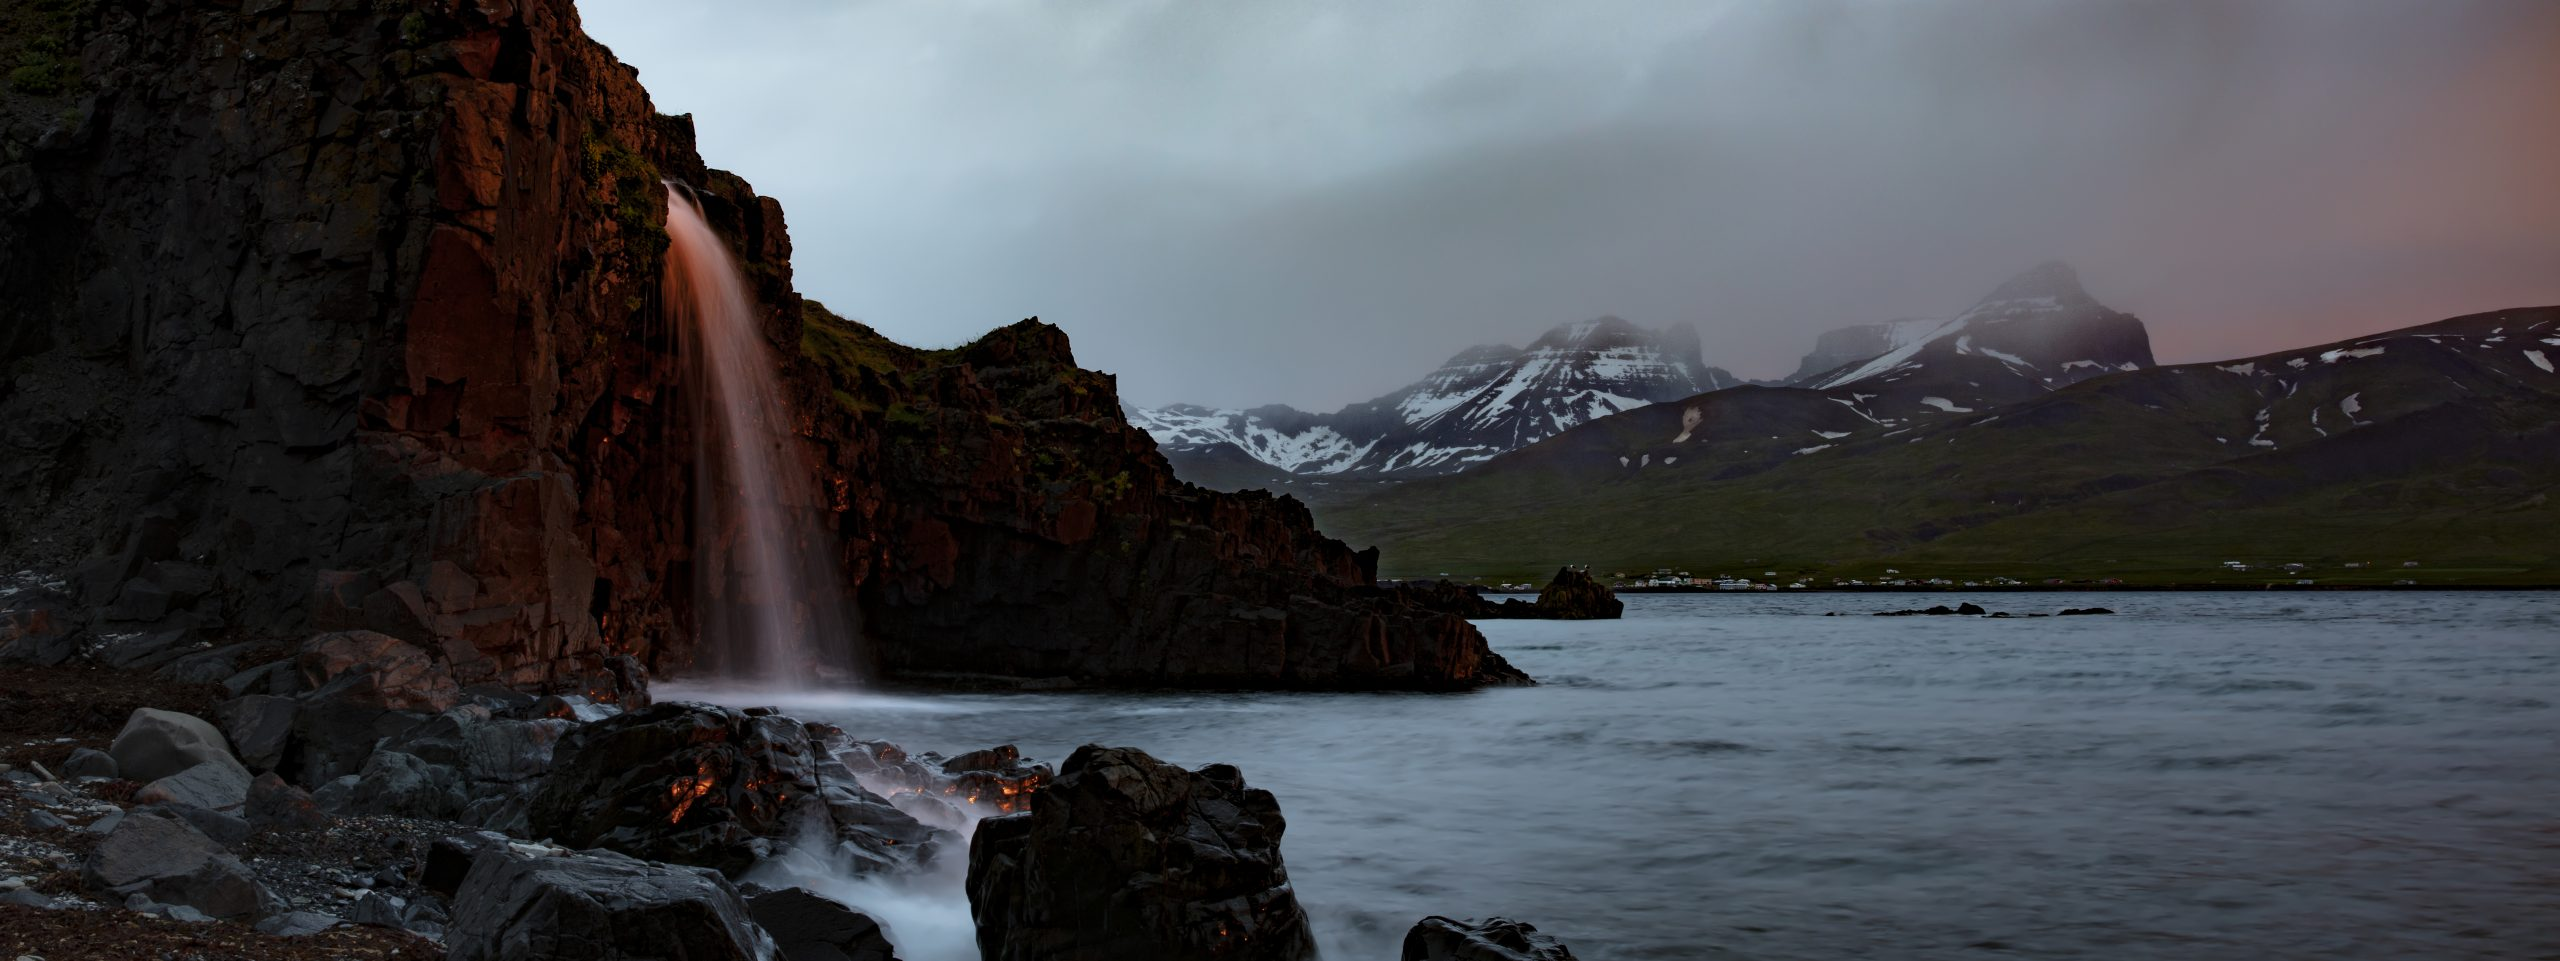 Red waterfall in Iceland